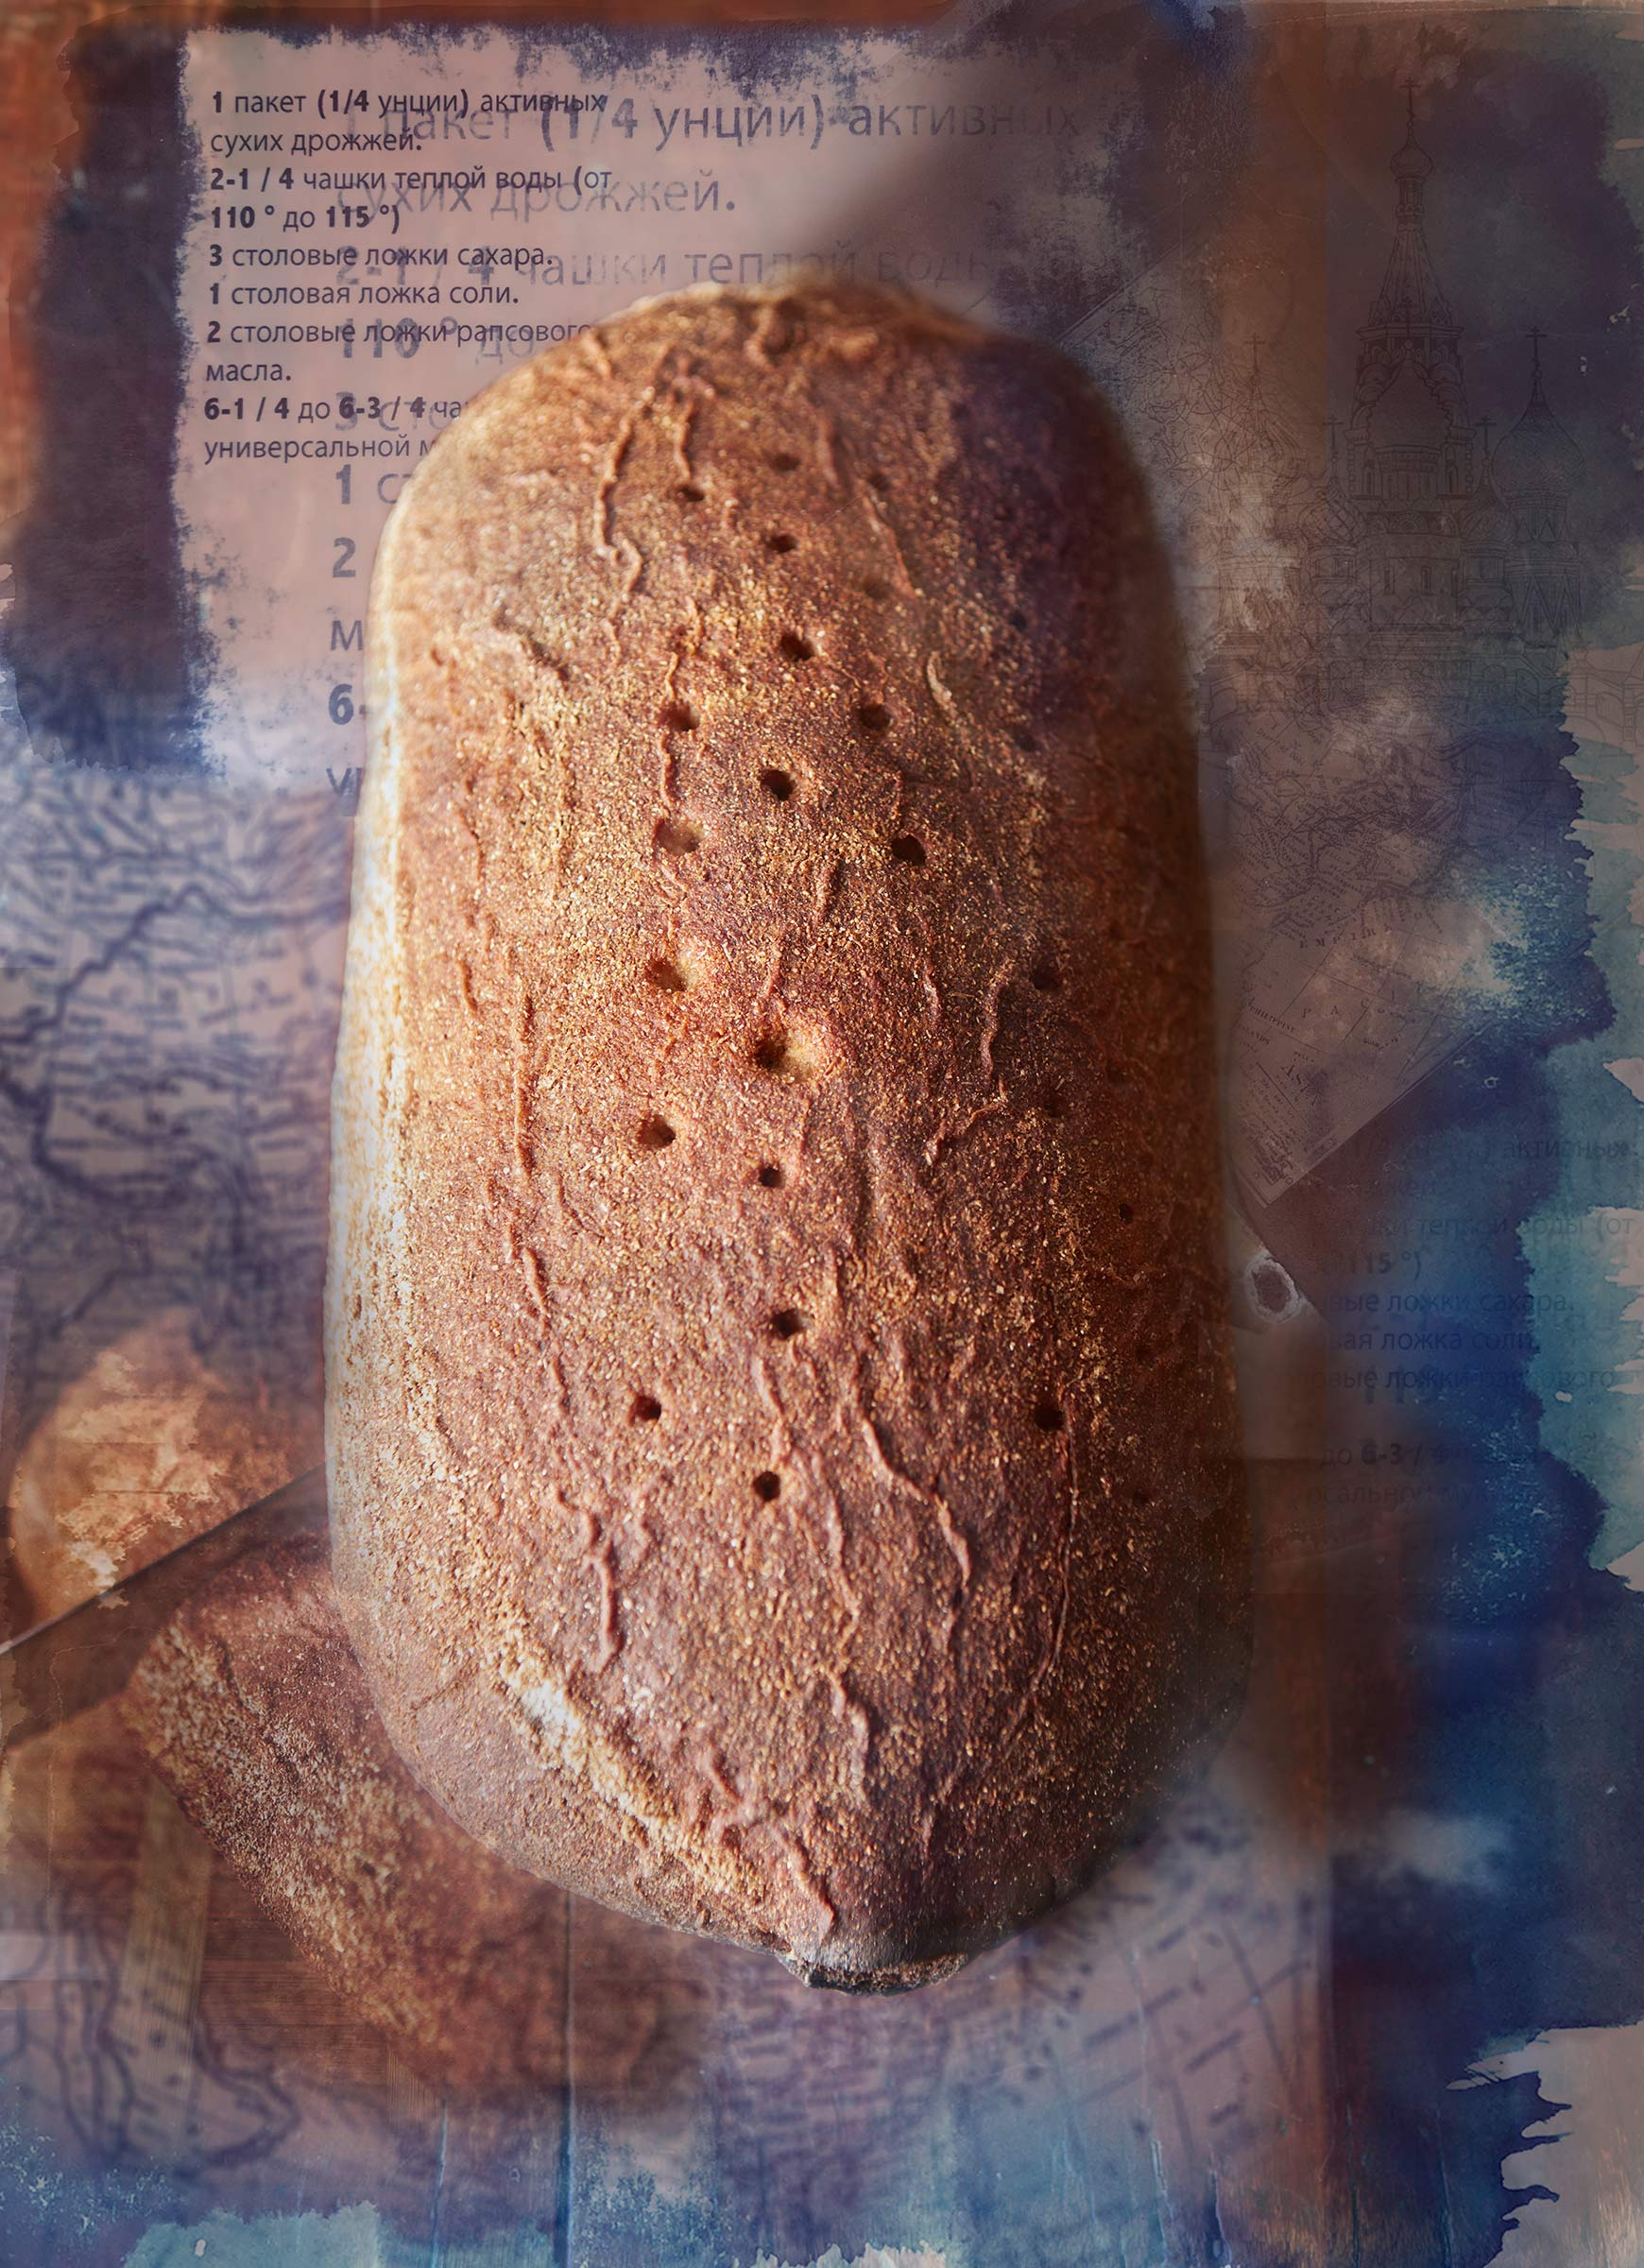 Bread-Russian-web